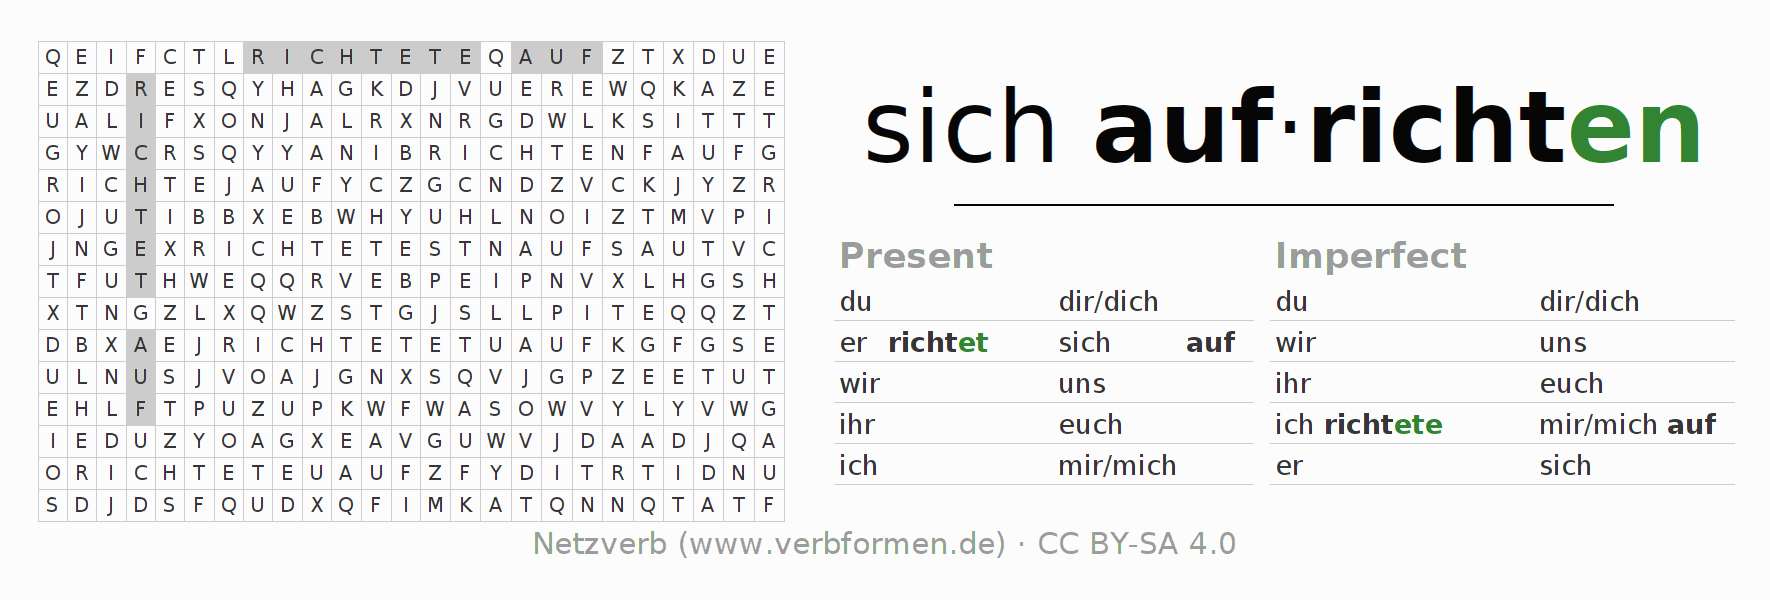 Word search puzzle for the conjugation of the verb sich aufrichten